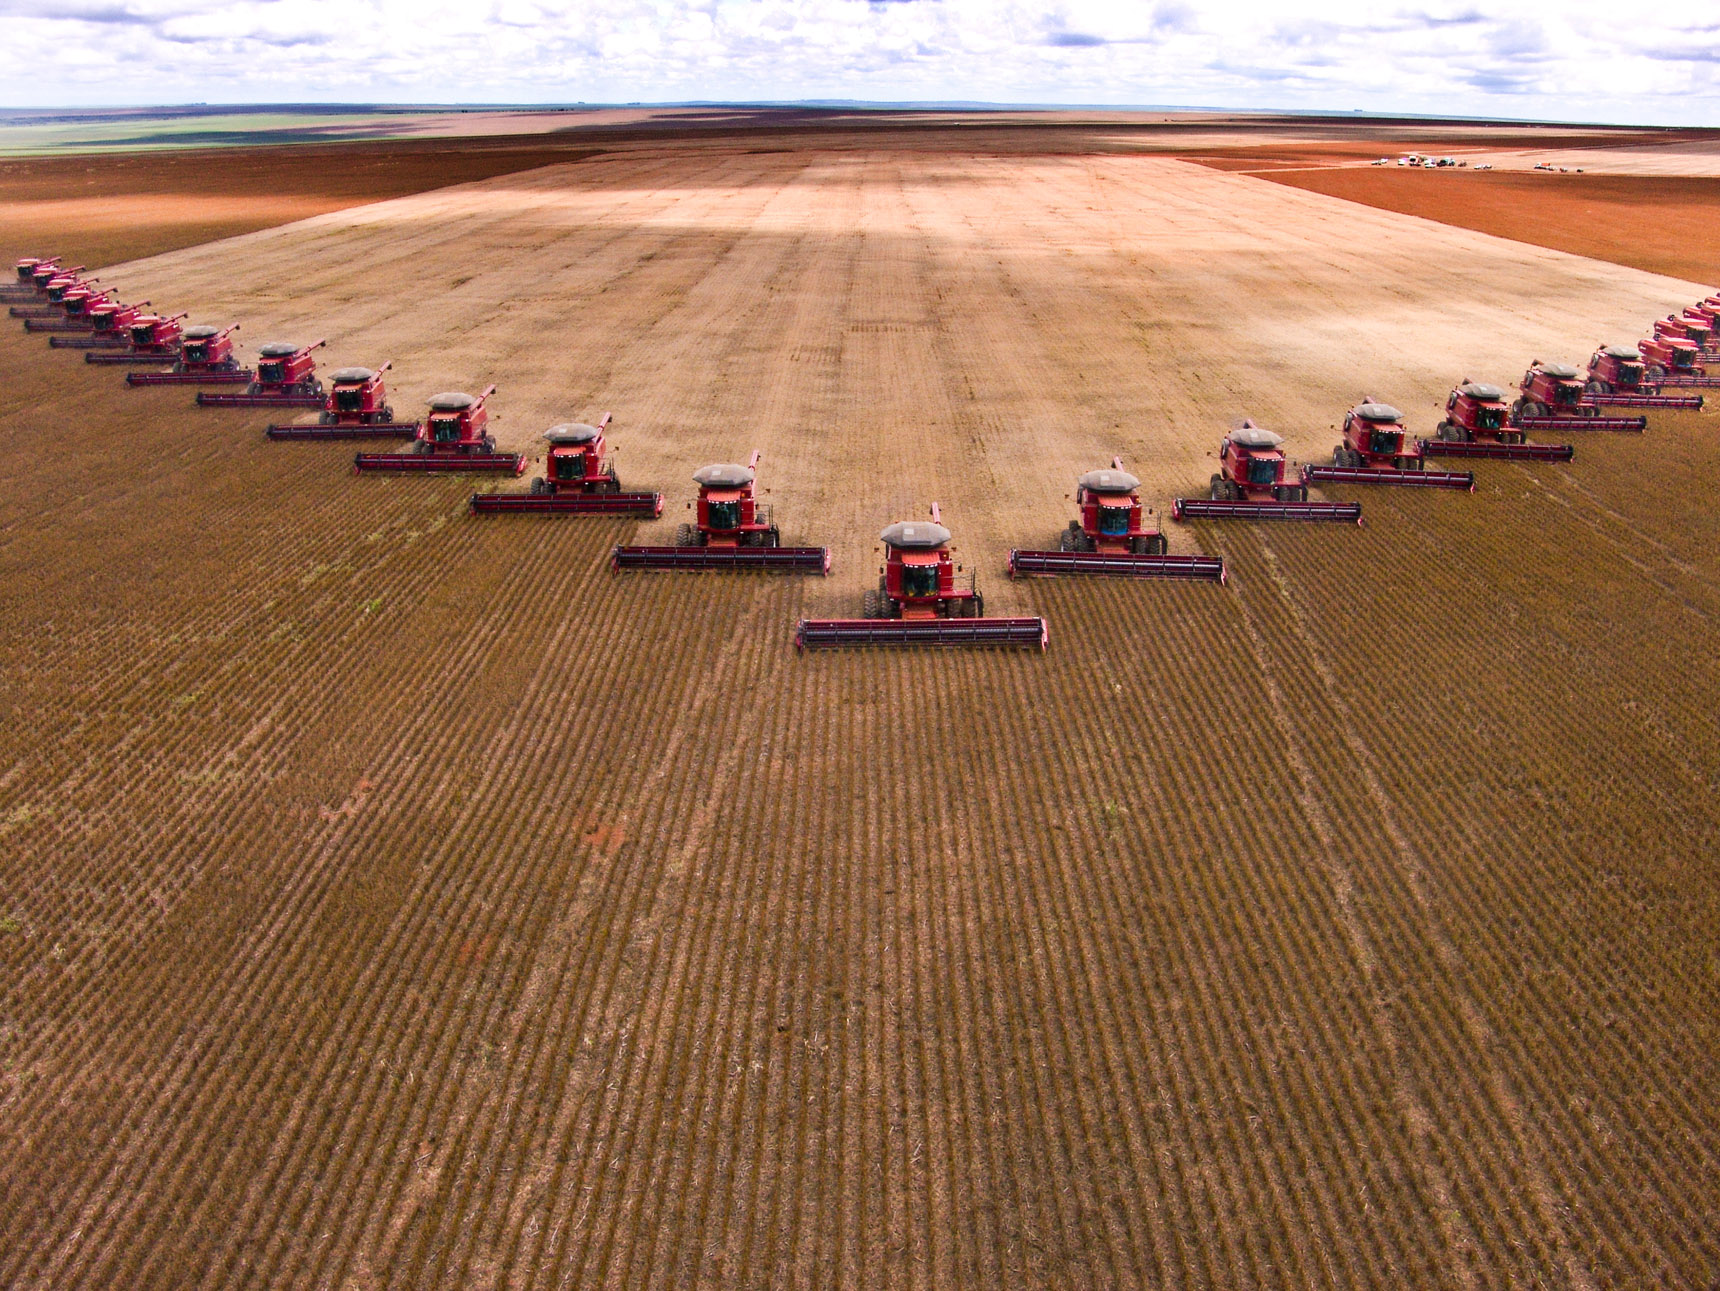 Mass soybean harvesting at a farm in Brazil. | Bild (Ausschnitt): © Alffoto  - Dreamstime.com